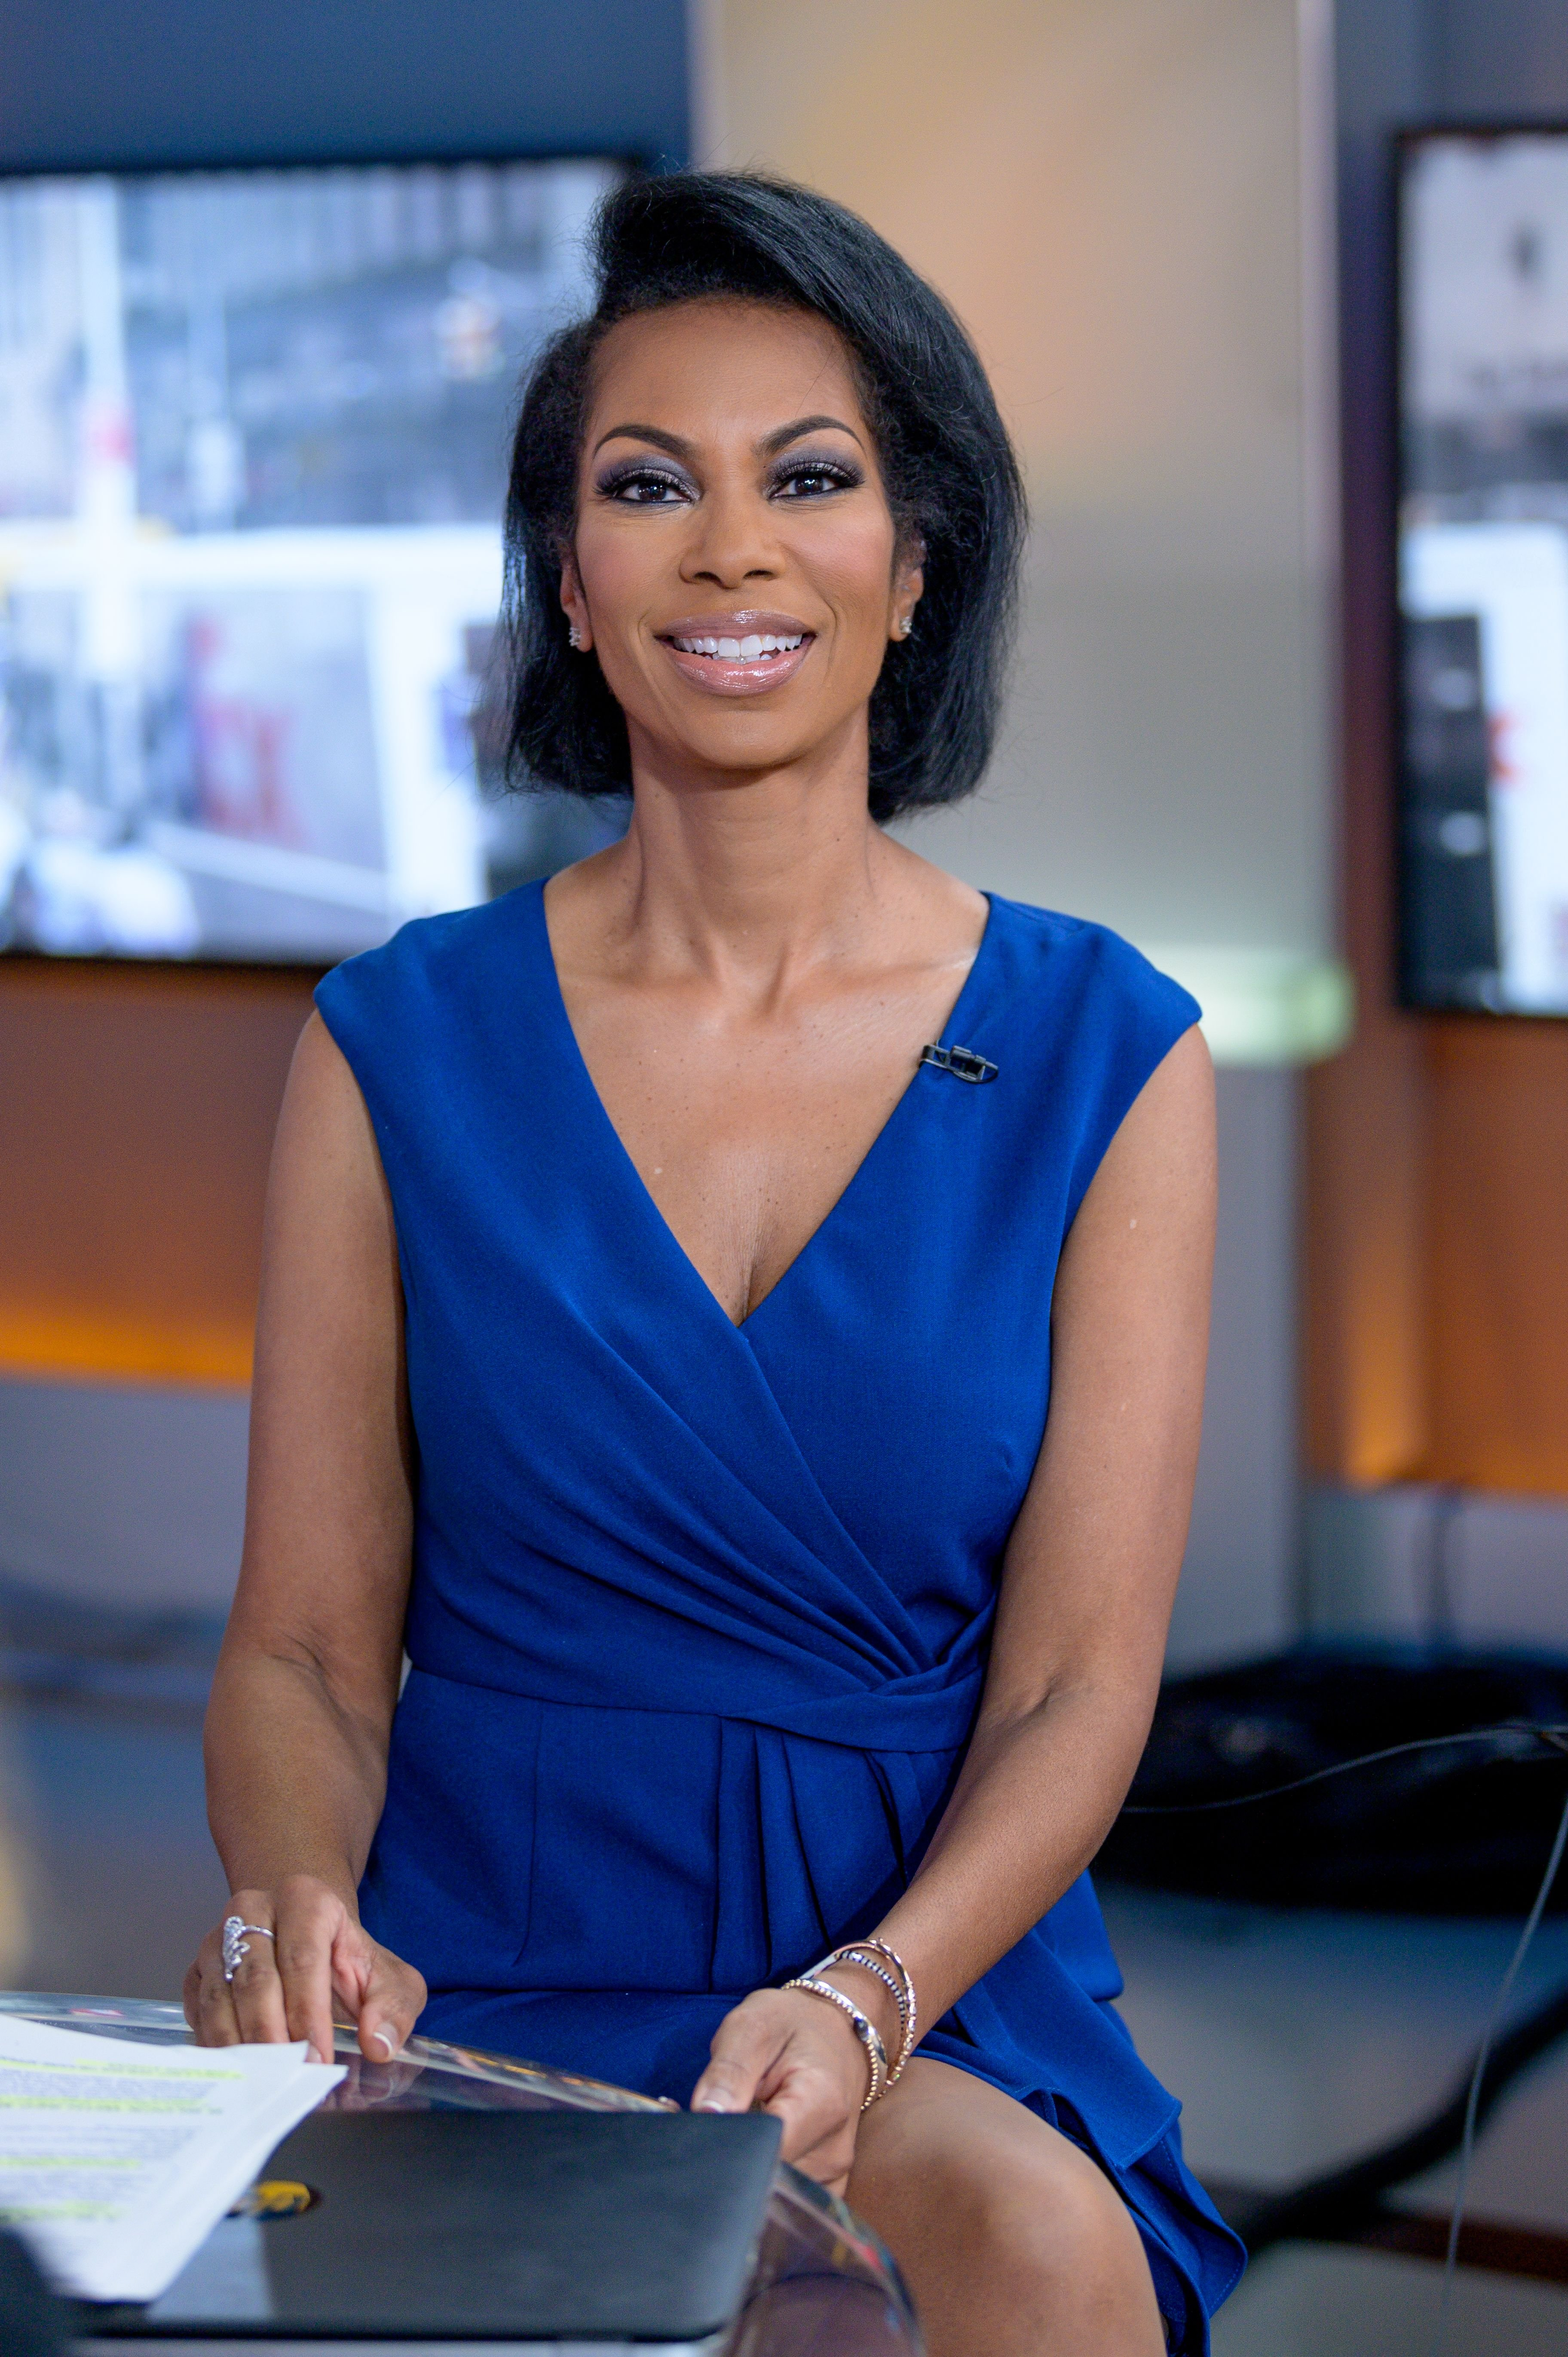 Harris Faulkner at the Fox News Channel Studios on September 18, 2019 in New York. │Photo: Getty Images